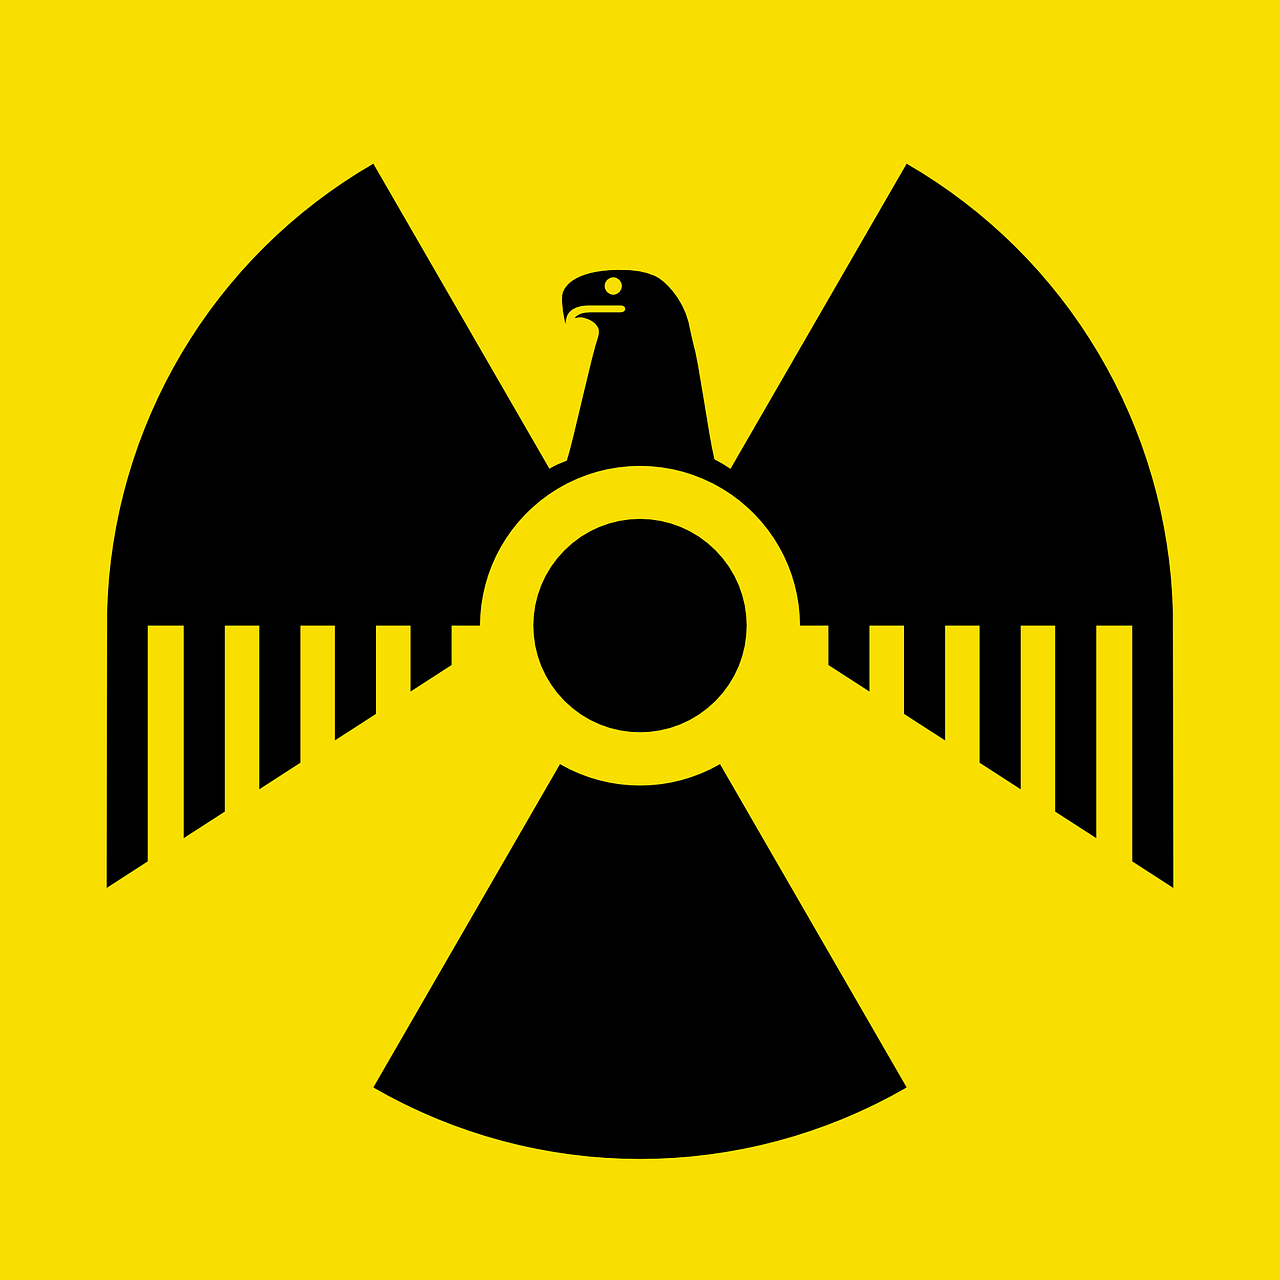 radioactive symbol german free photo